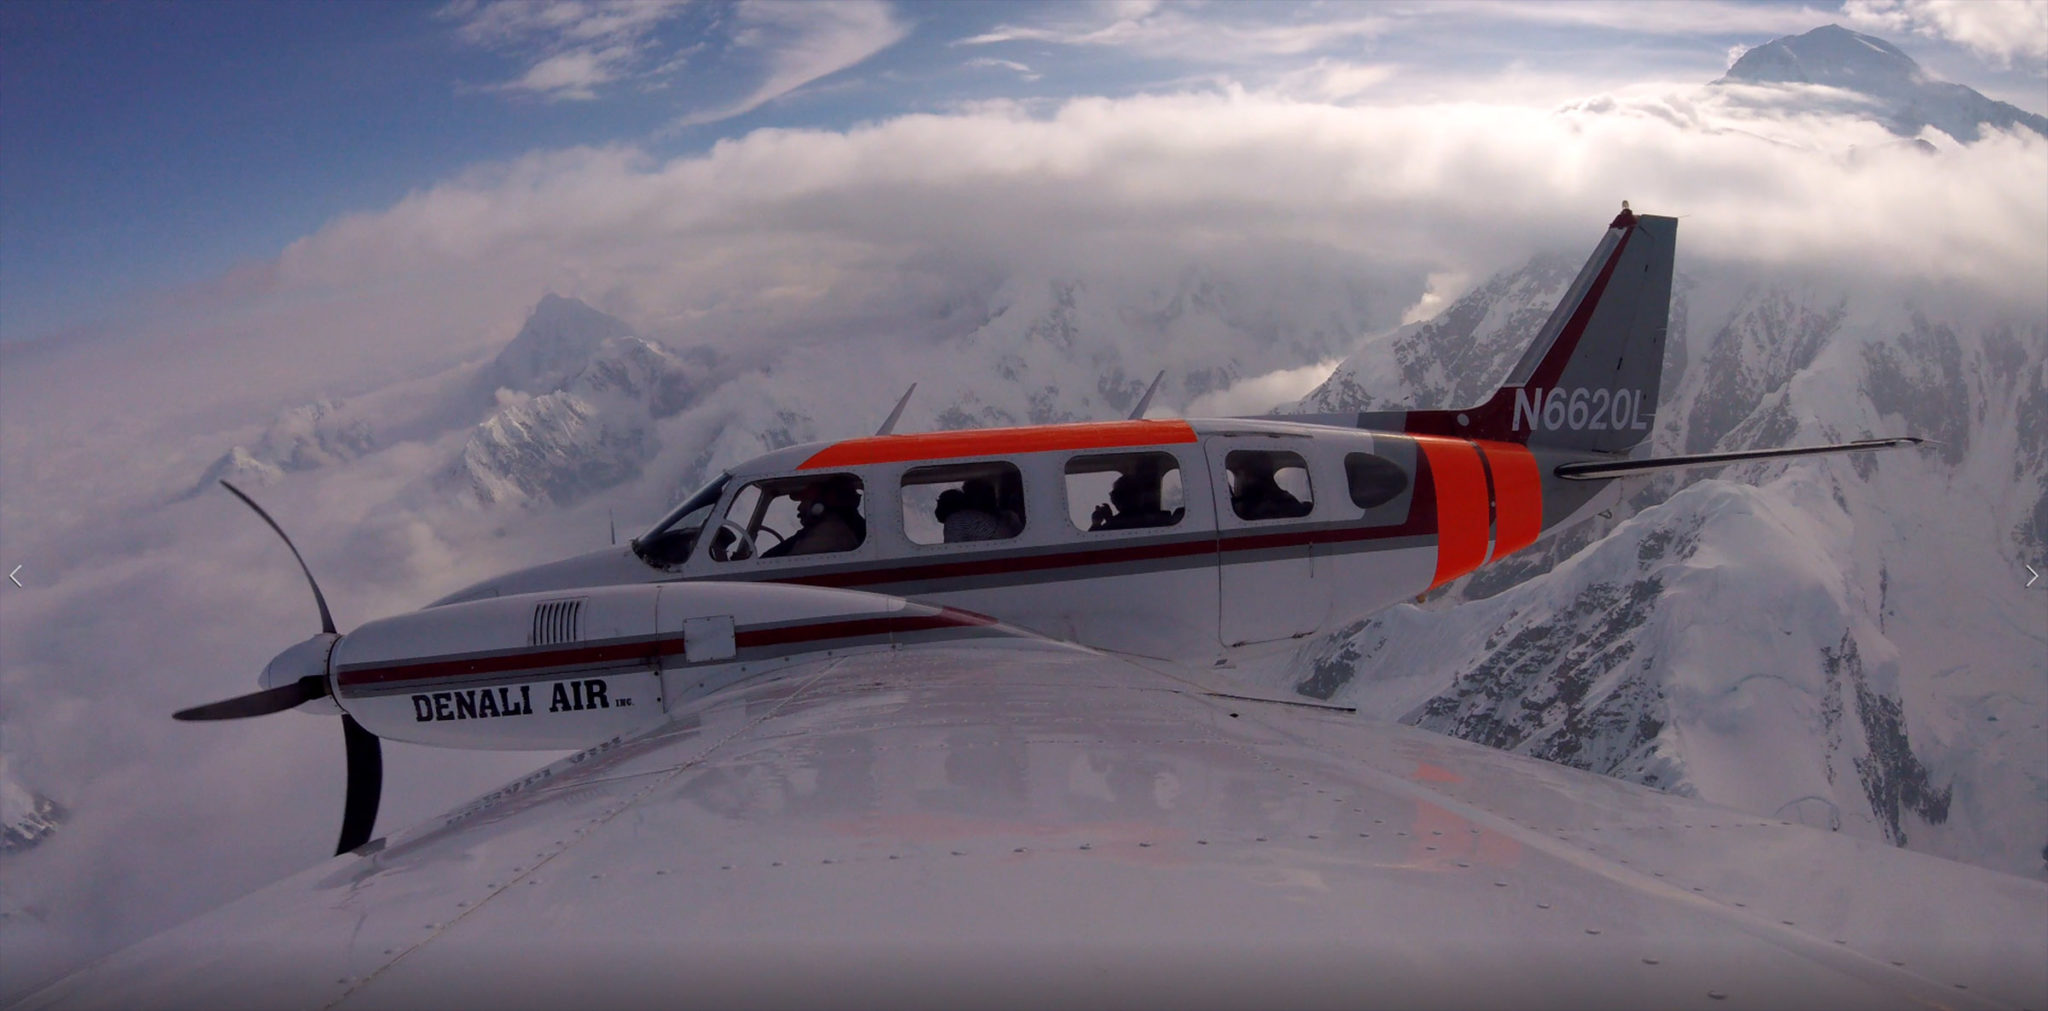 Alaskafoto jpeg image of an Airplane in-flight from the left wing